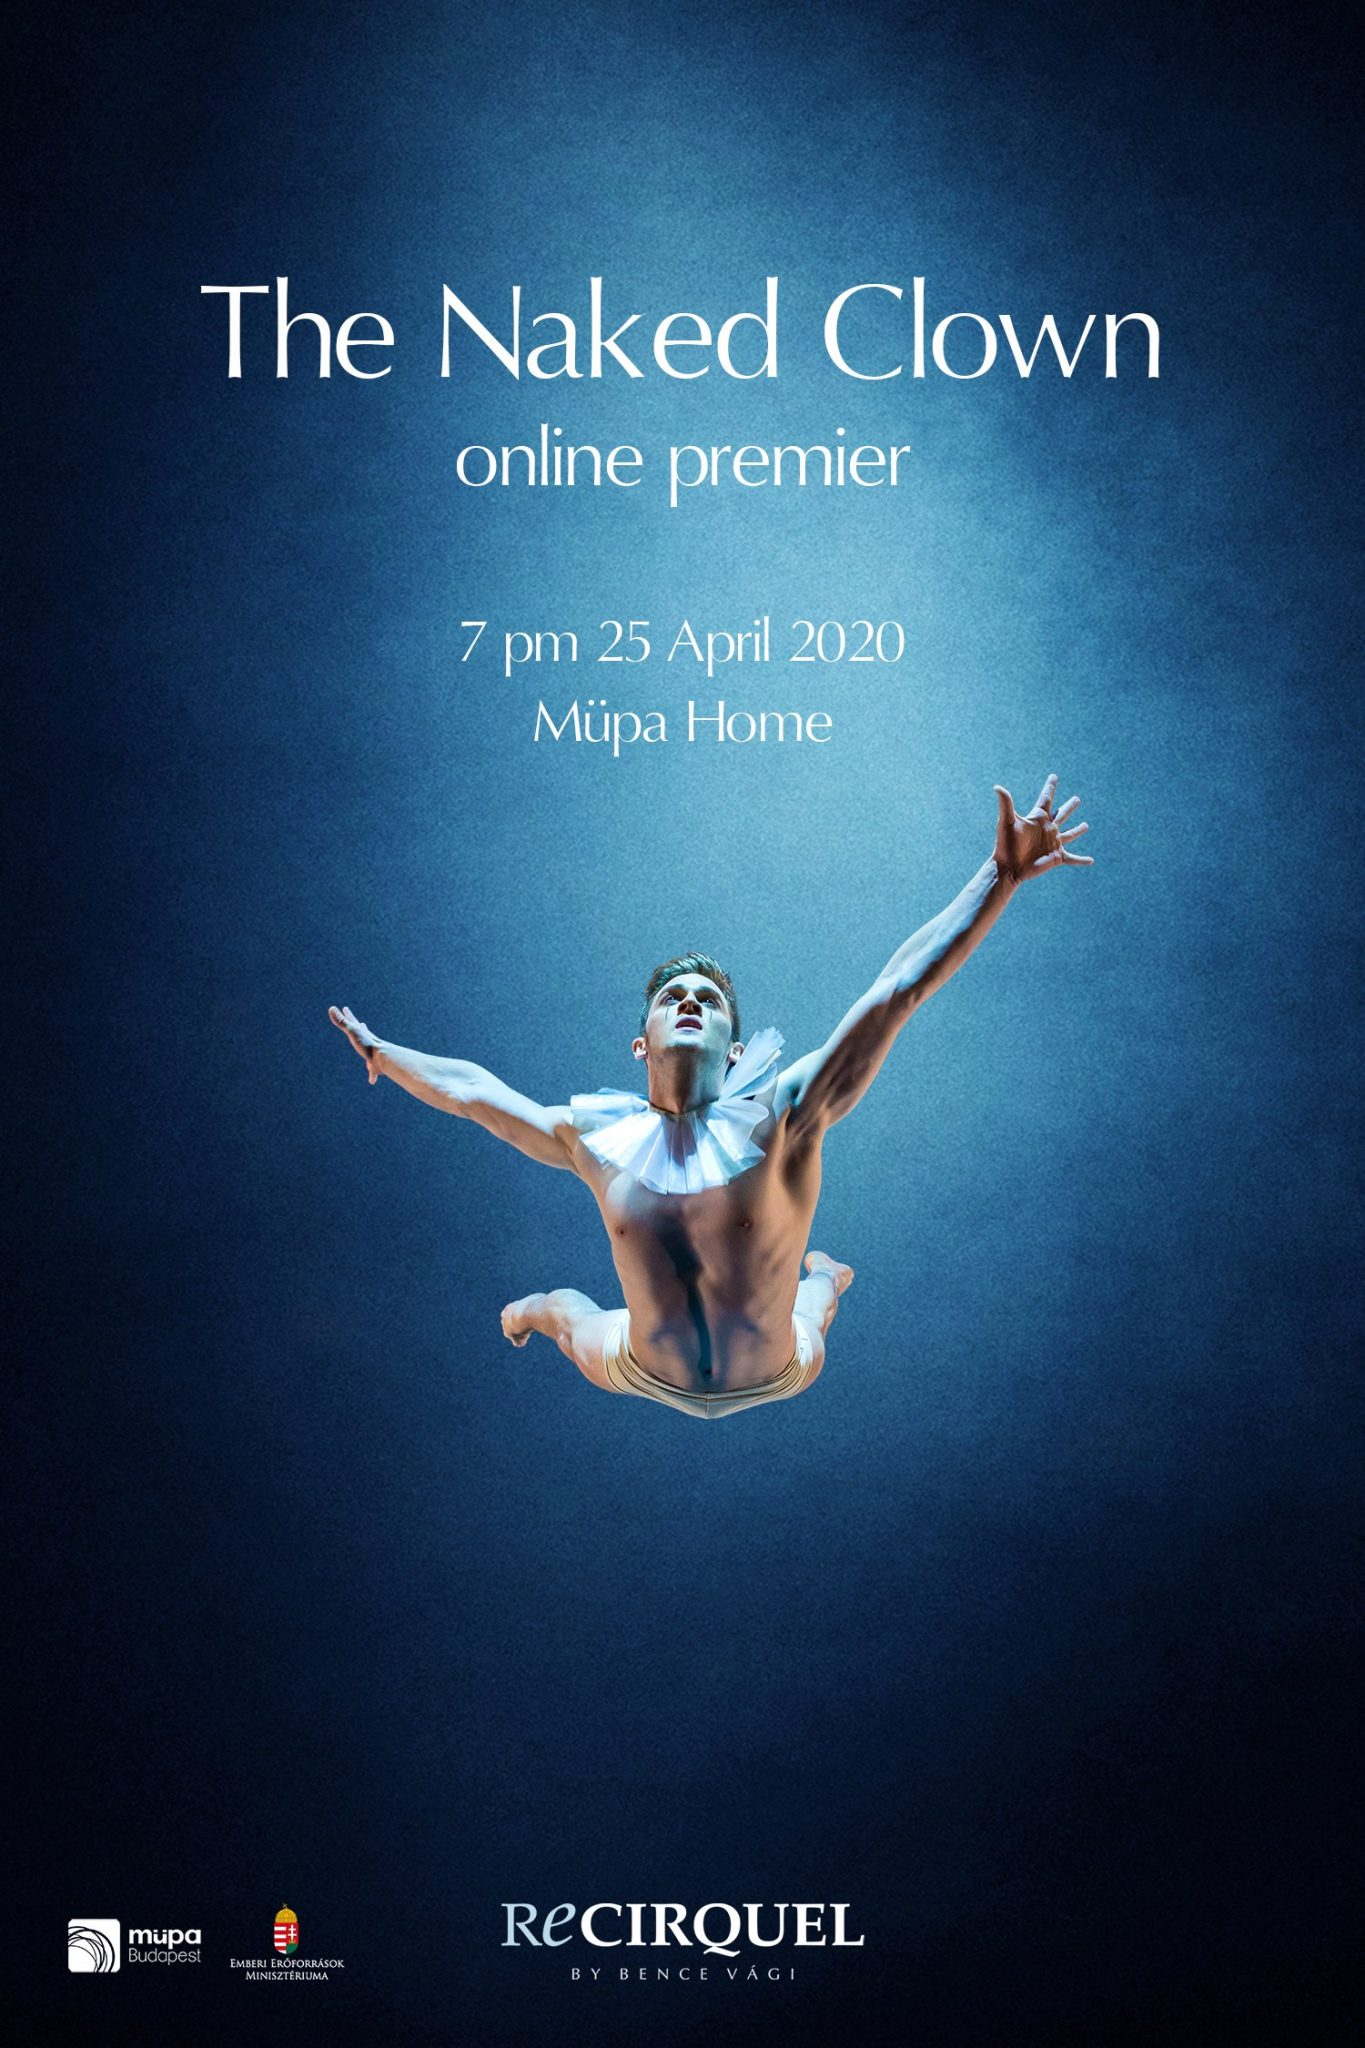 The Naked Clown goes online!